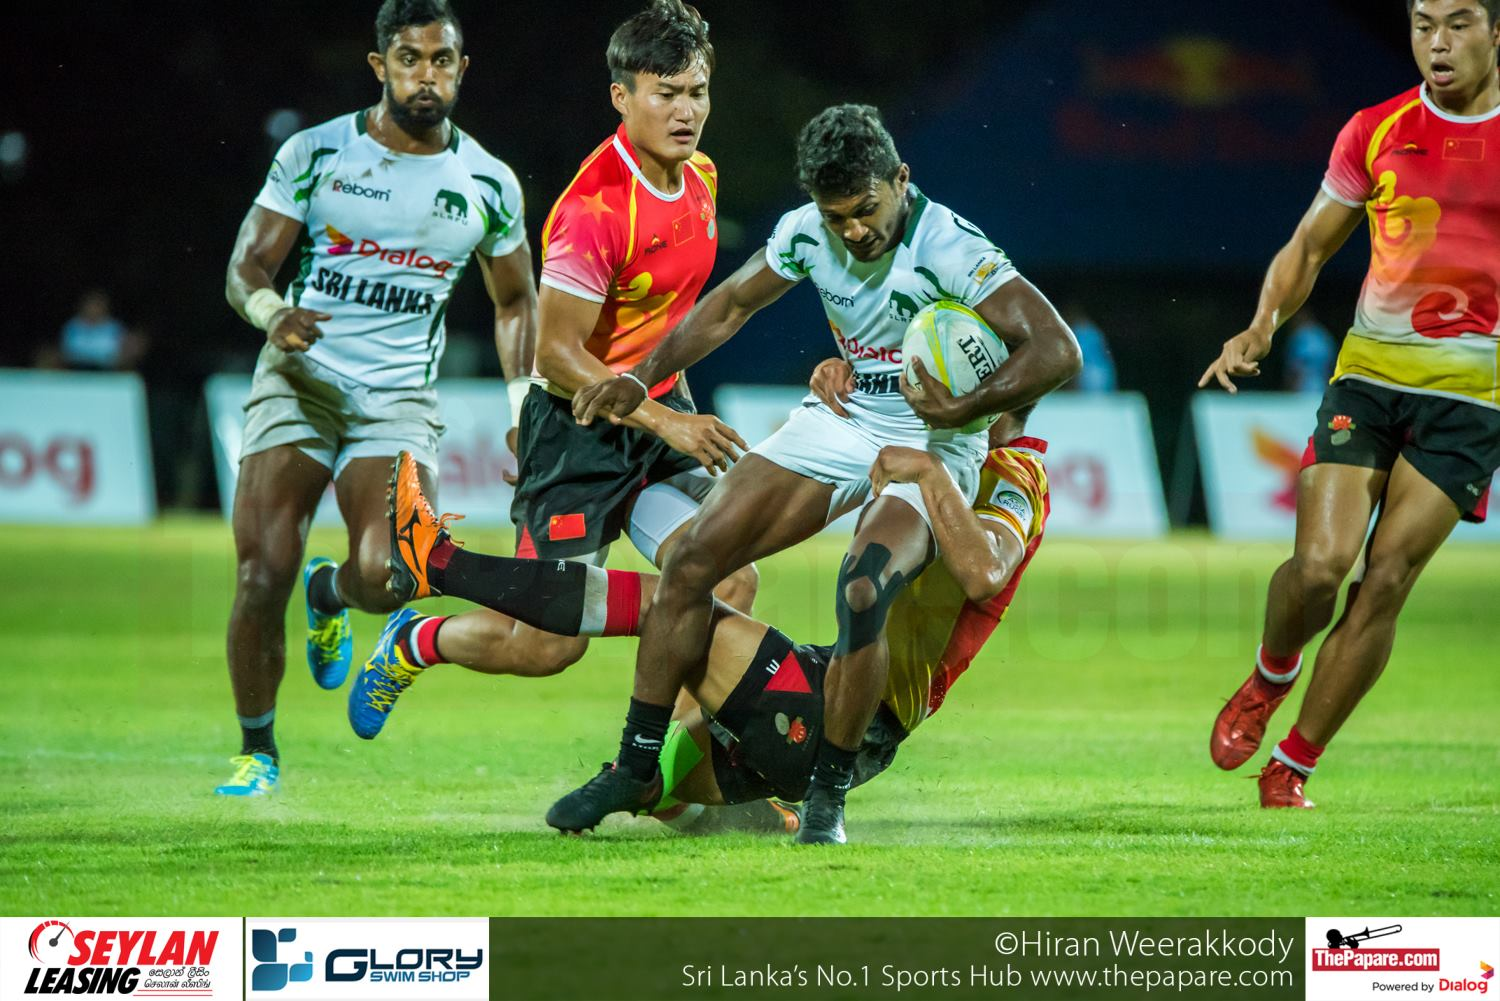 Sri Lanka fumble but will join Hong Kong for World Rugby 7s Qualifiers